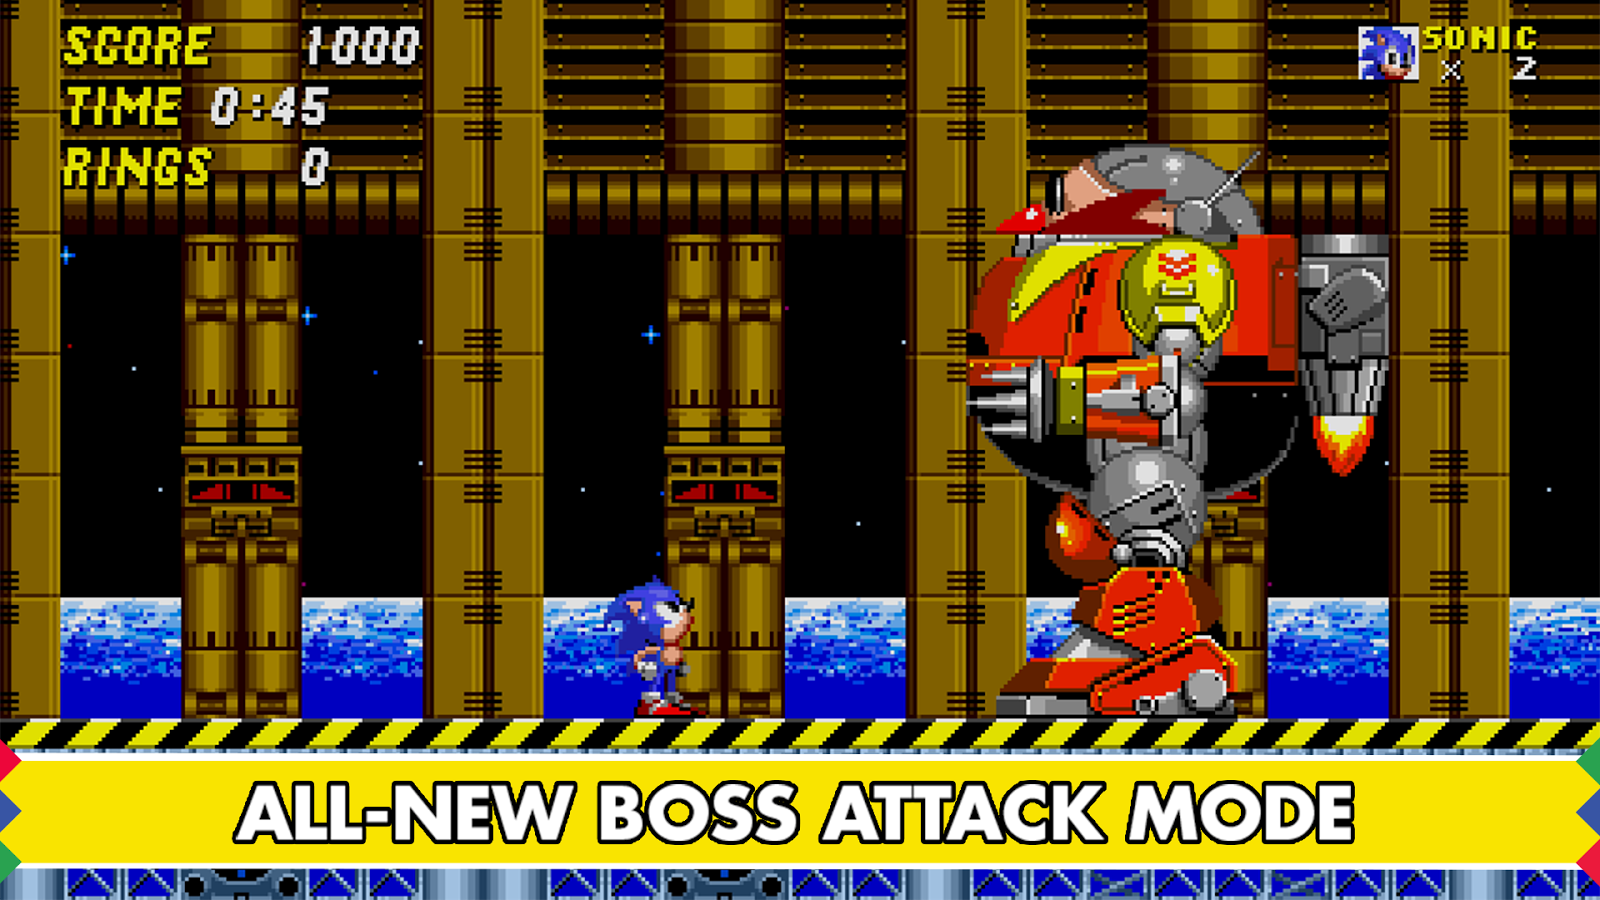 New Game Sonic The Hedgehog 2 Lands On Android With A New Level Playable Knuckles Online Multiplayer And More